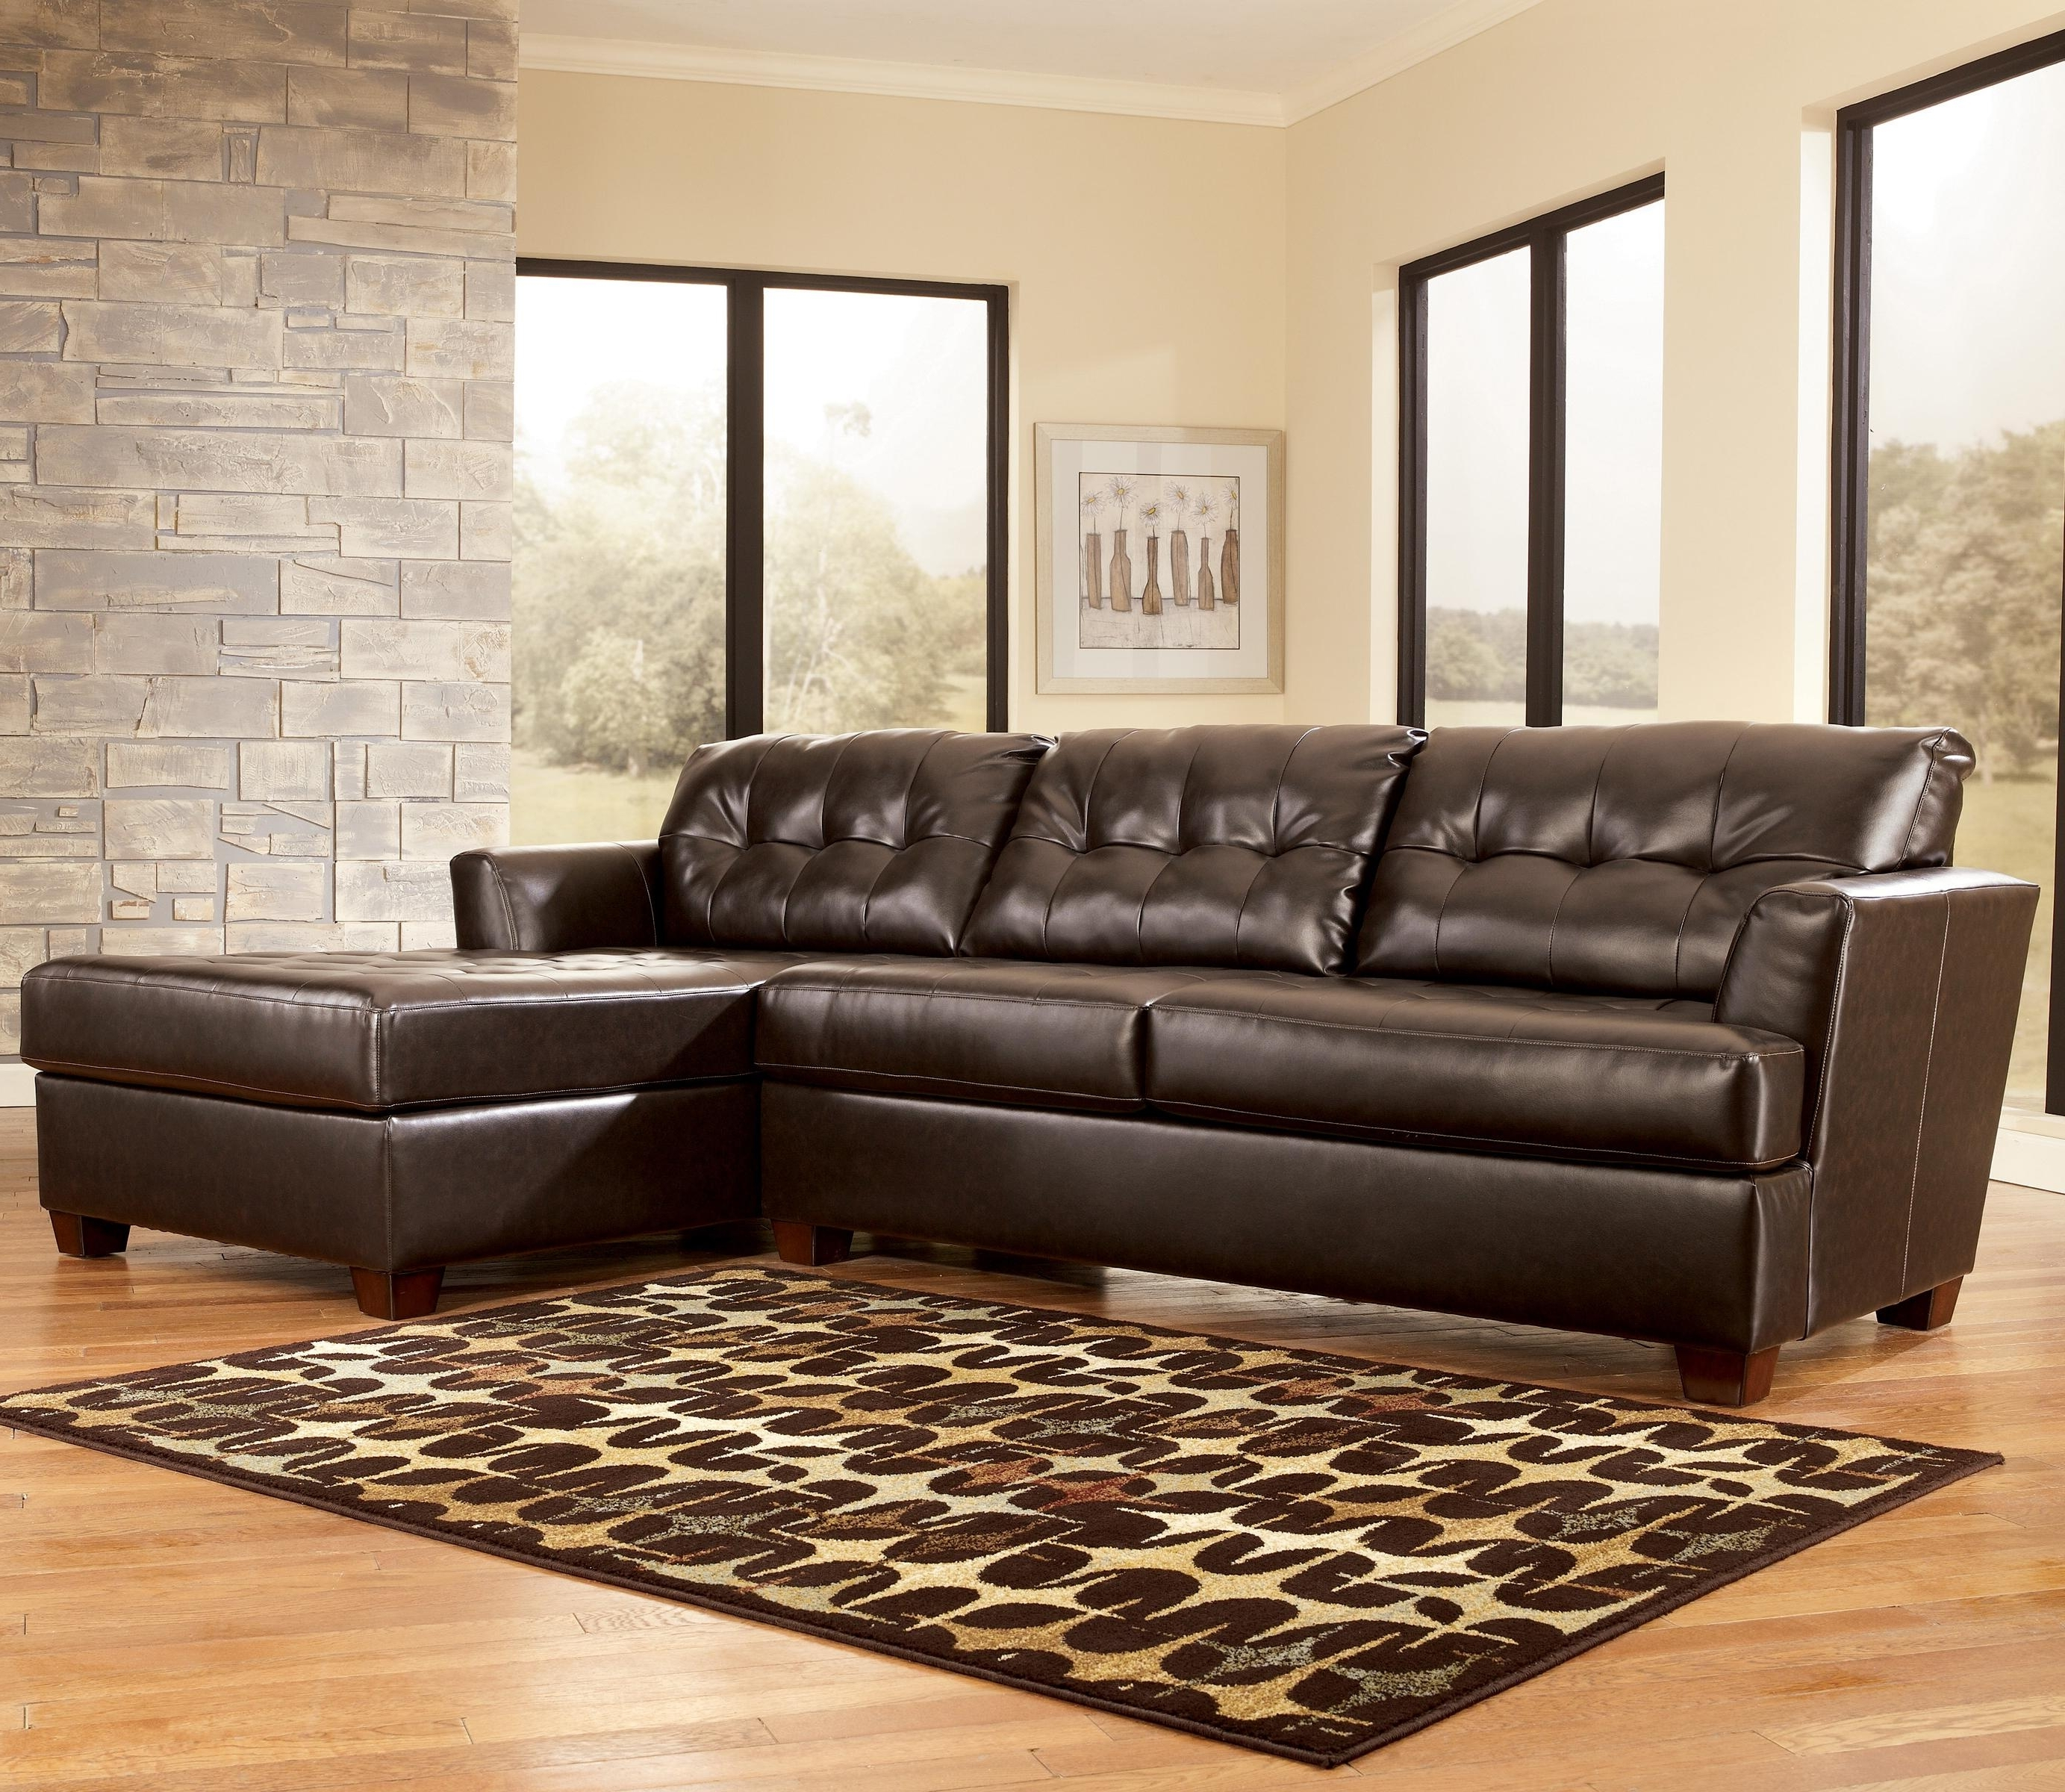 Dixon Durablend – Chocolate Sectional Sofasignature Design Within Most Recent Knoxville Tn Sectional Sofas (Gallery 2 of 20)